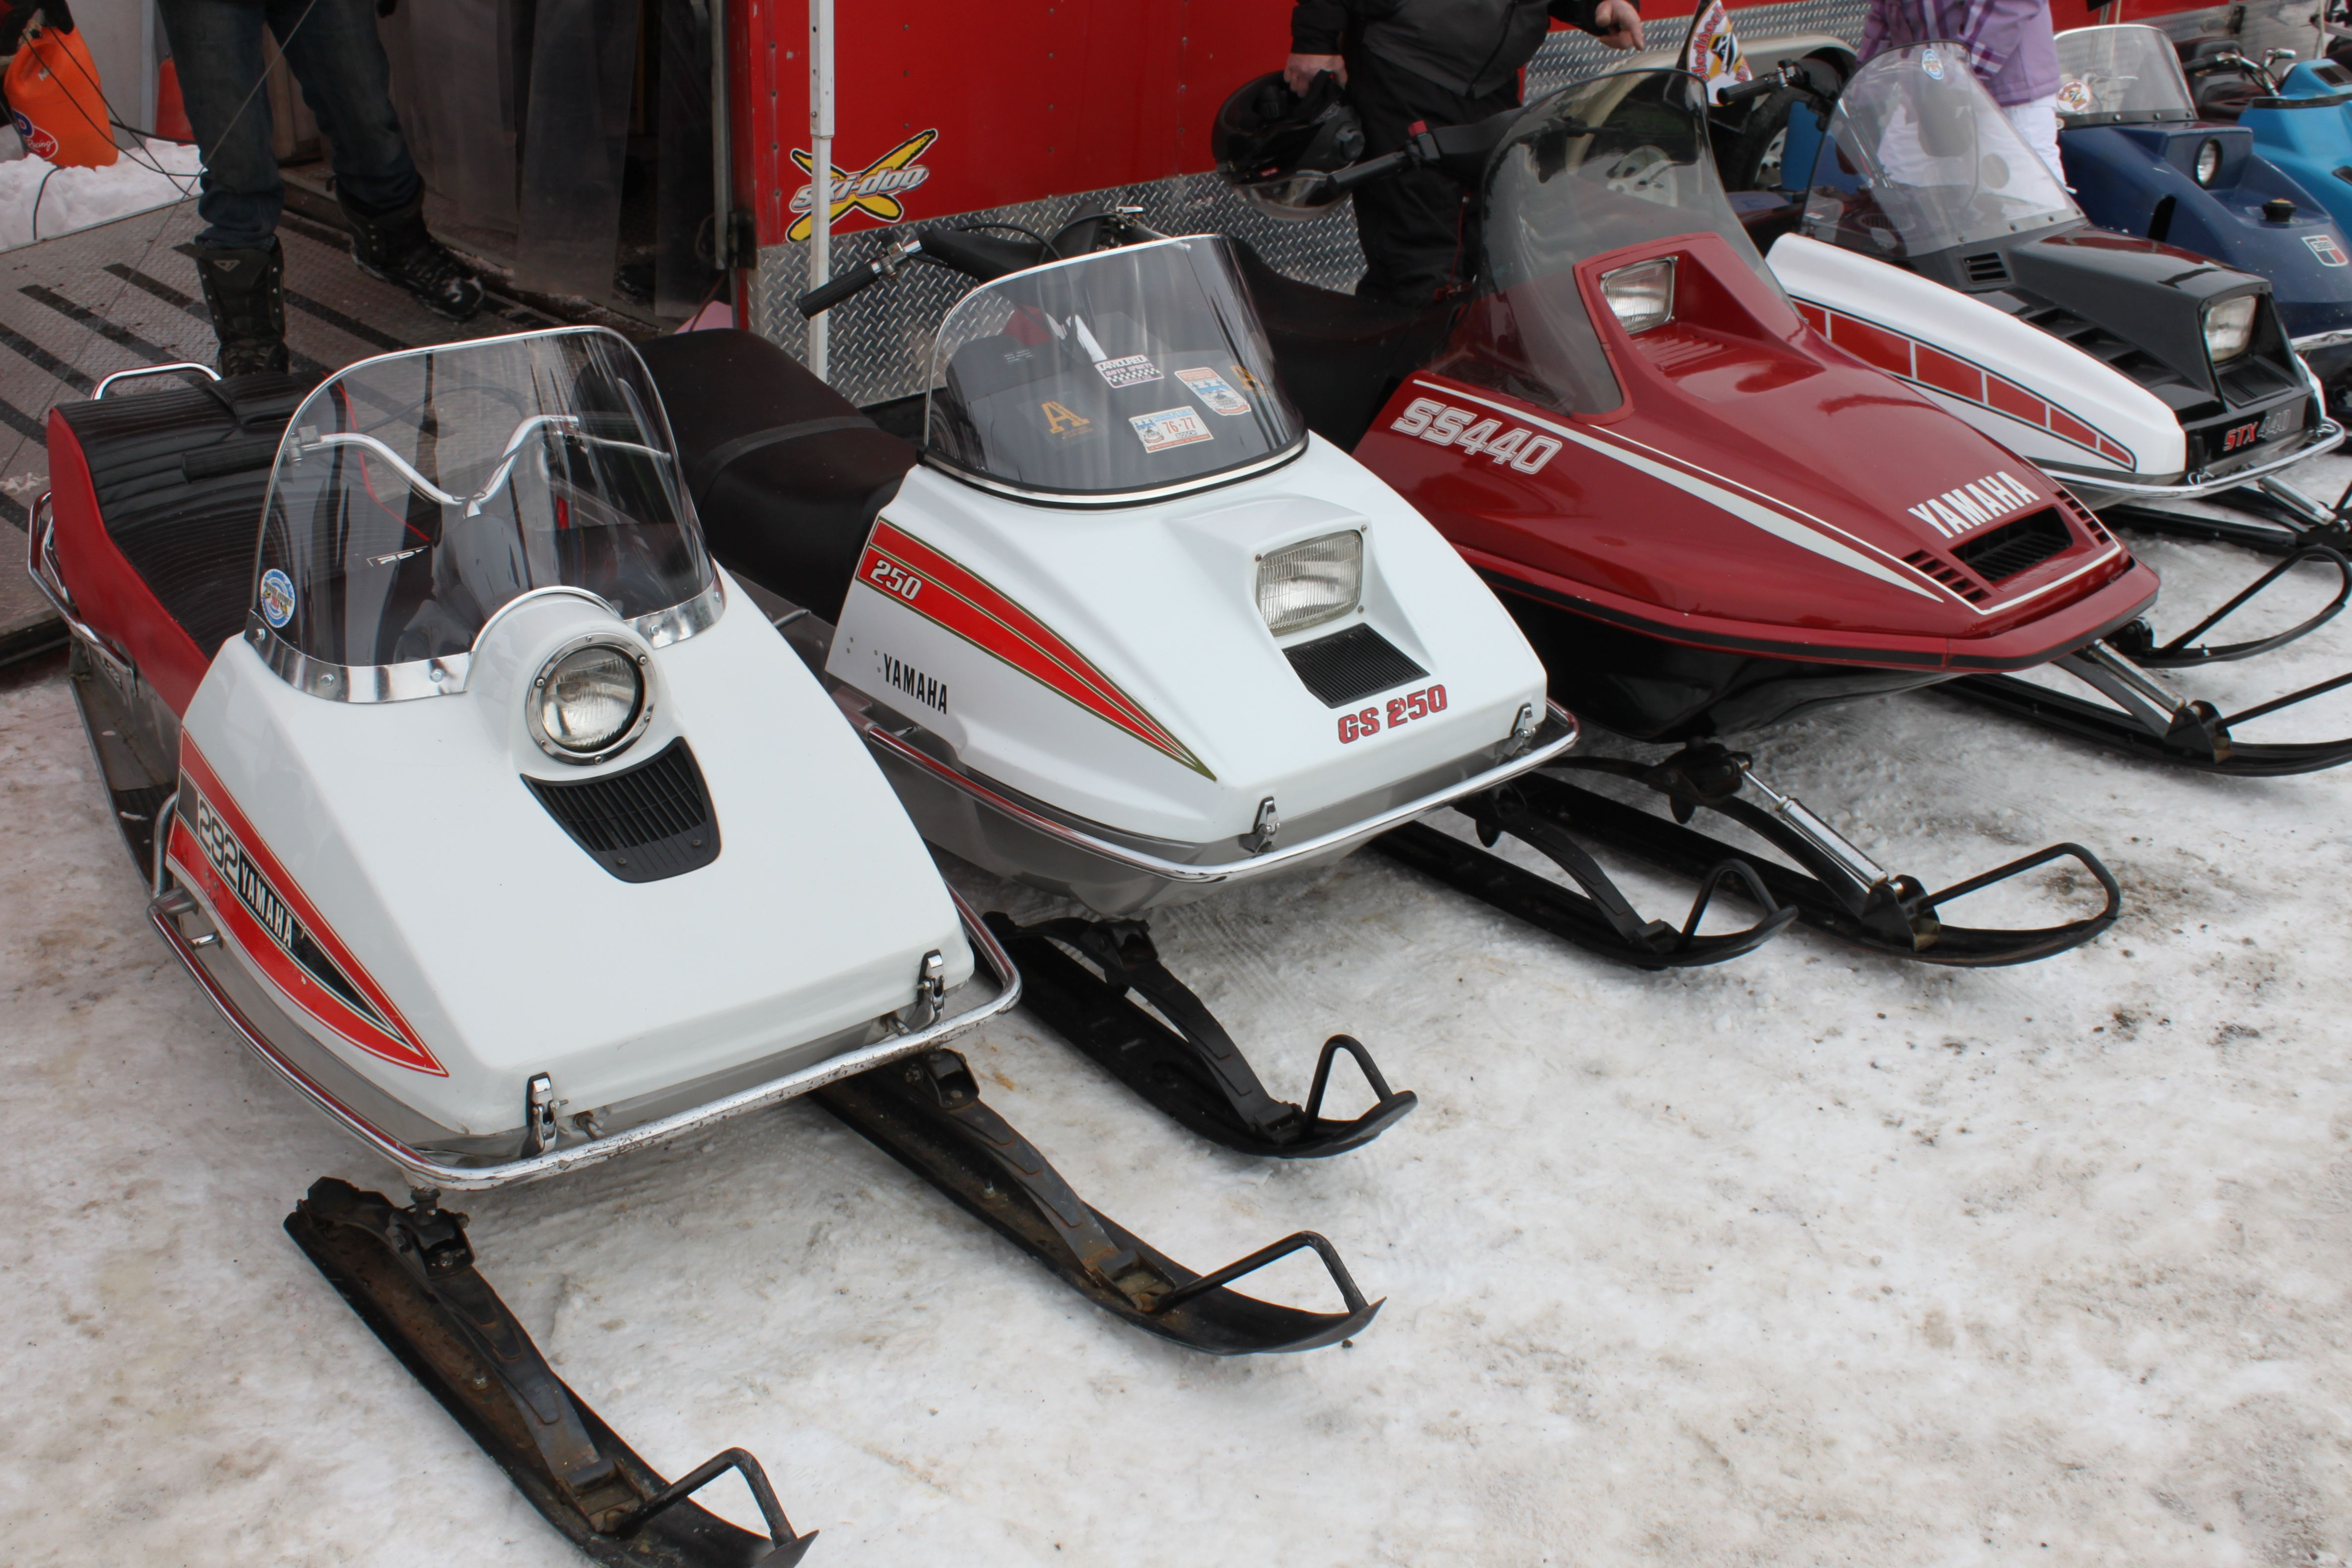 Pin By Mike Riehle On Vintage Snowmobiles Vintage Sled Snowmobile Yamaha